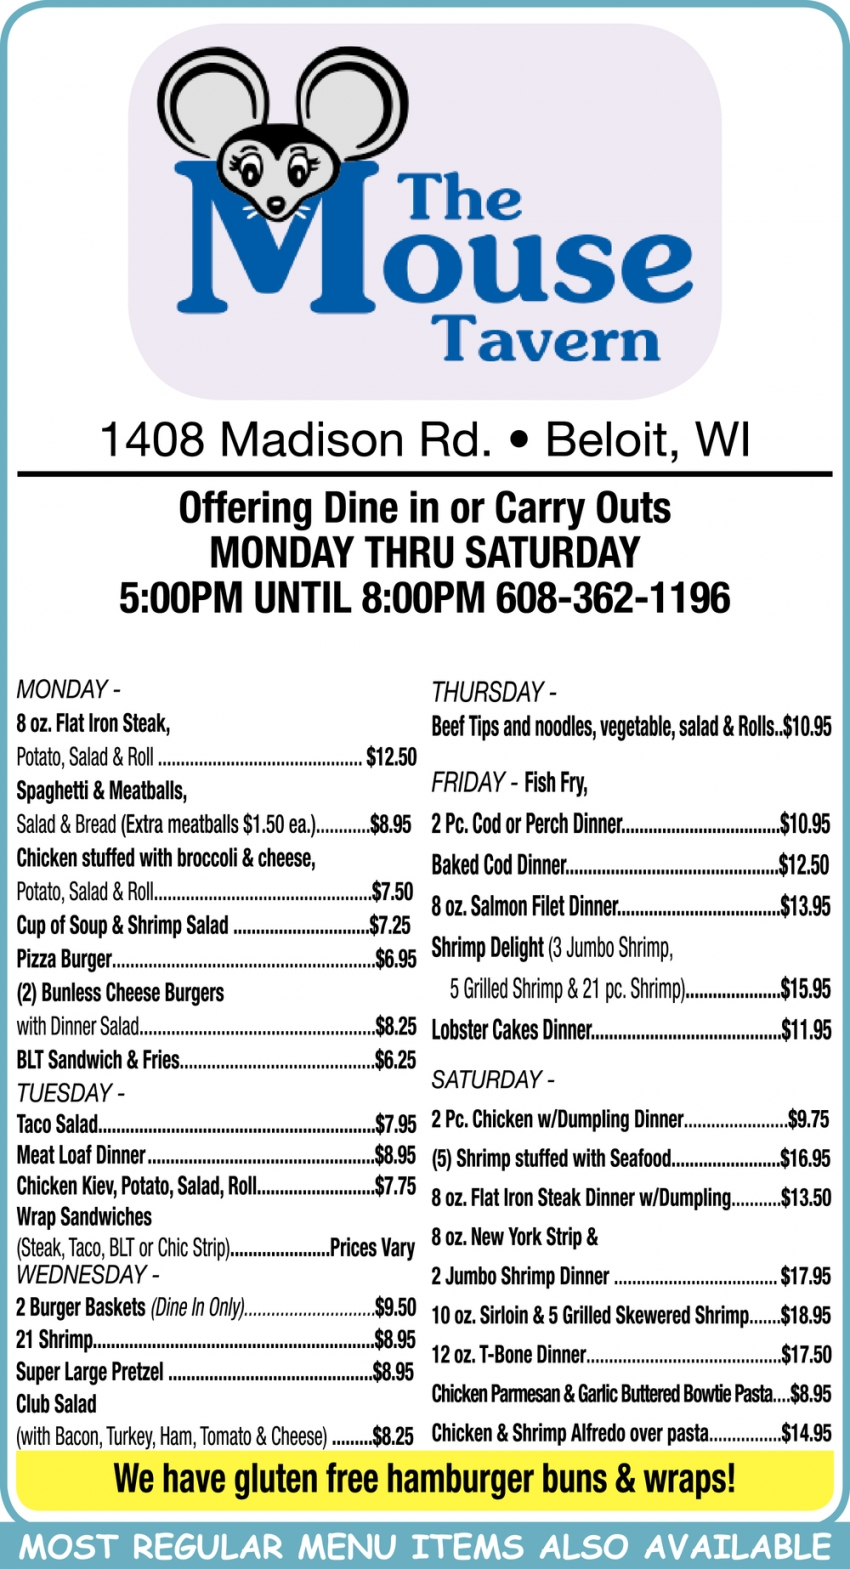 Dine In and Carry Out's Available